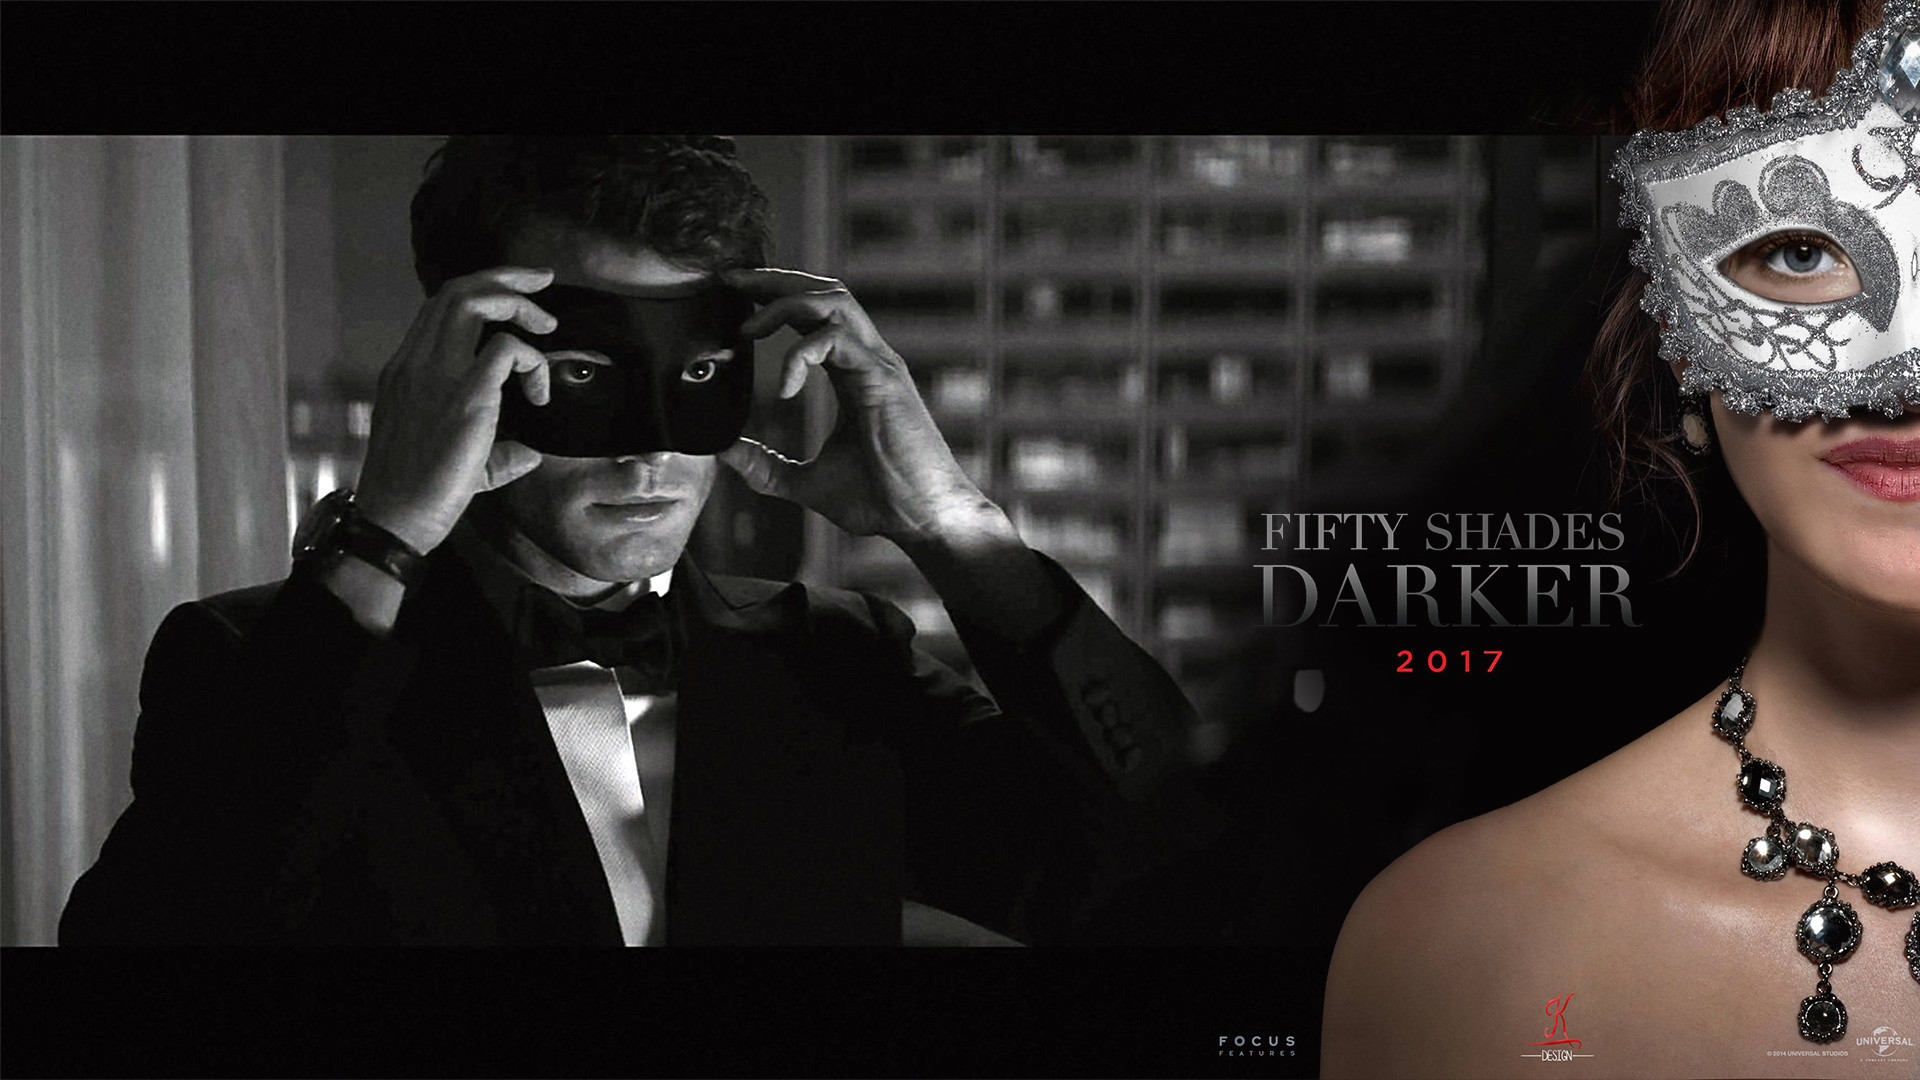 fifty shades darker   Fifty Shades Darker Movies Wallpaper and Backgrounds    All for Windows .